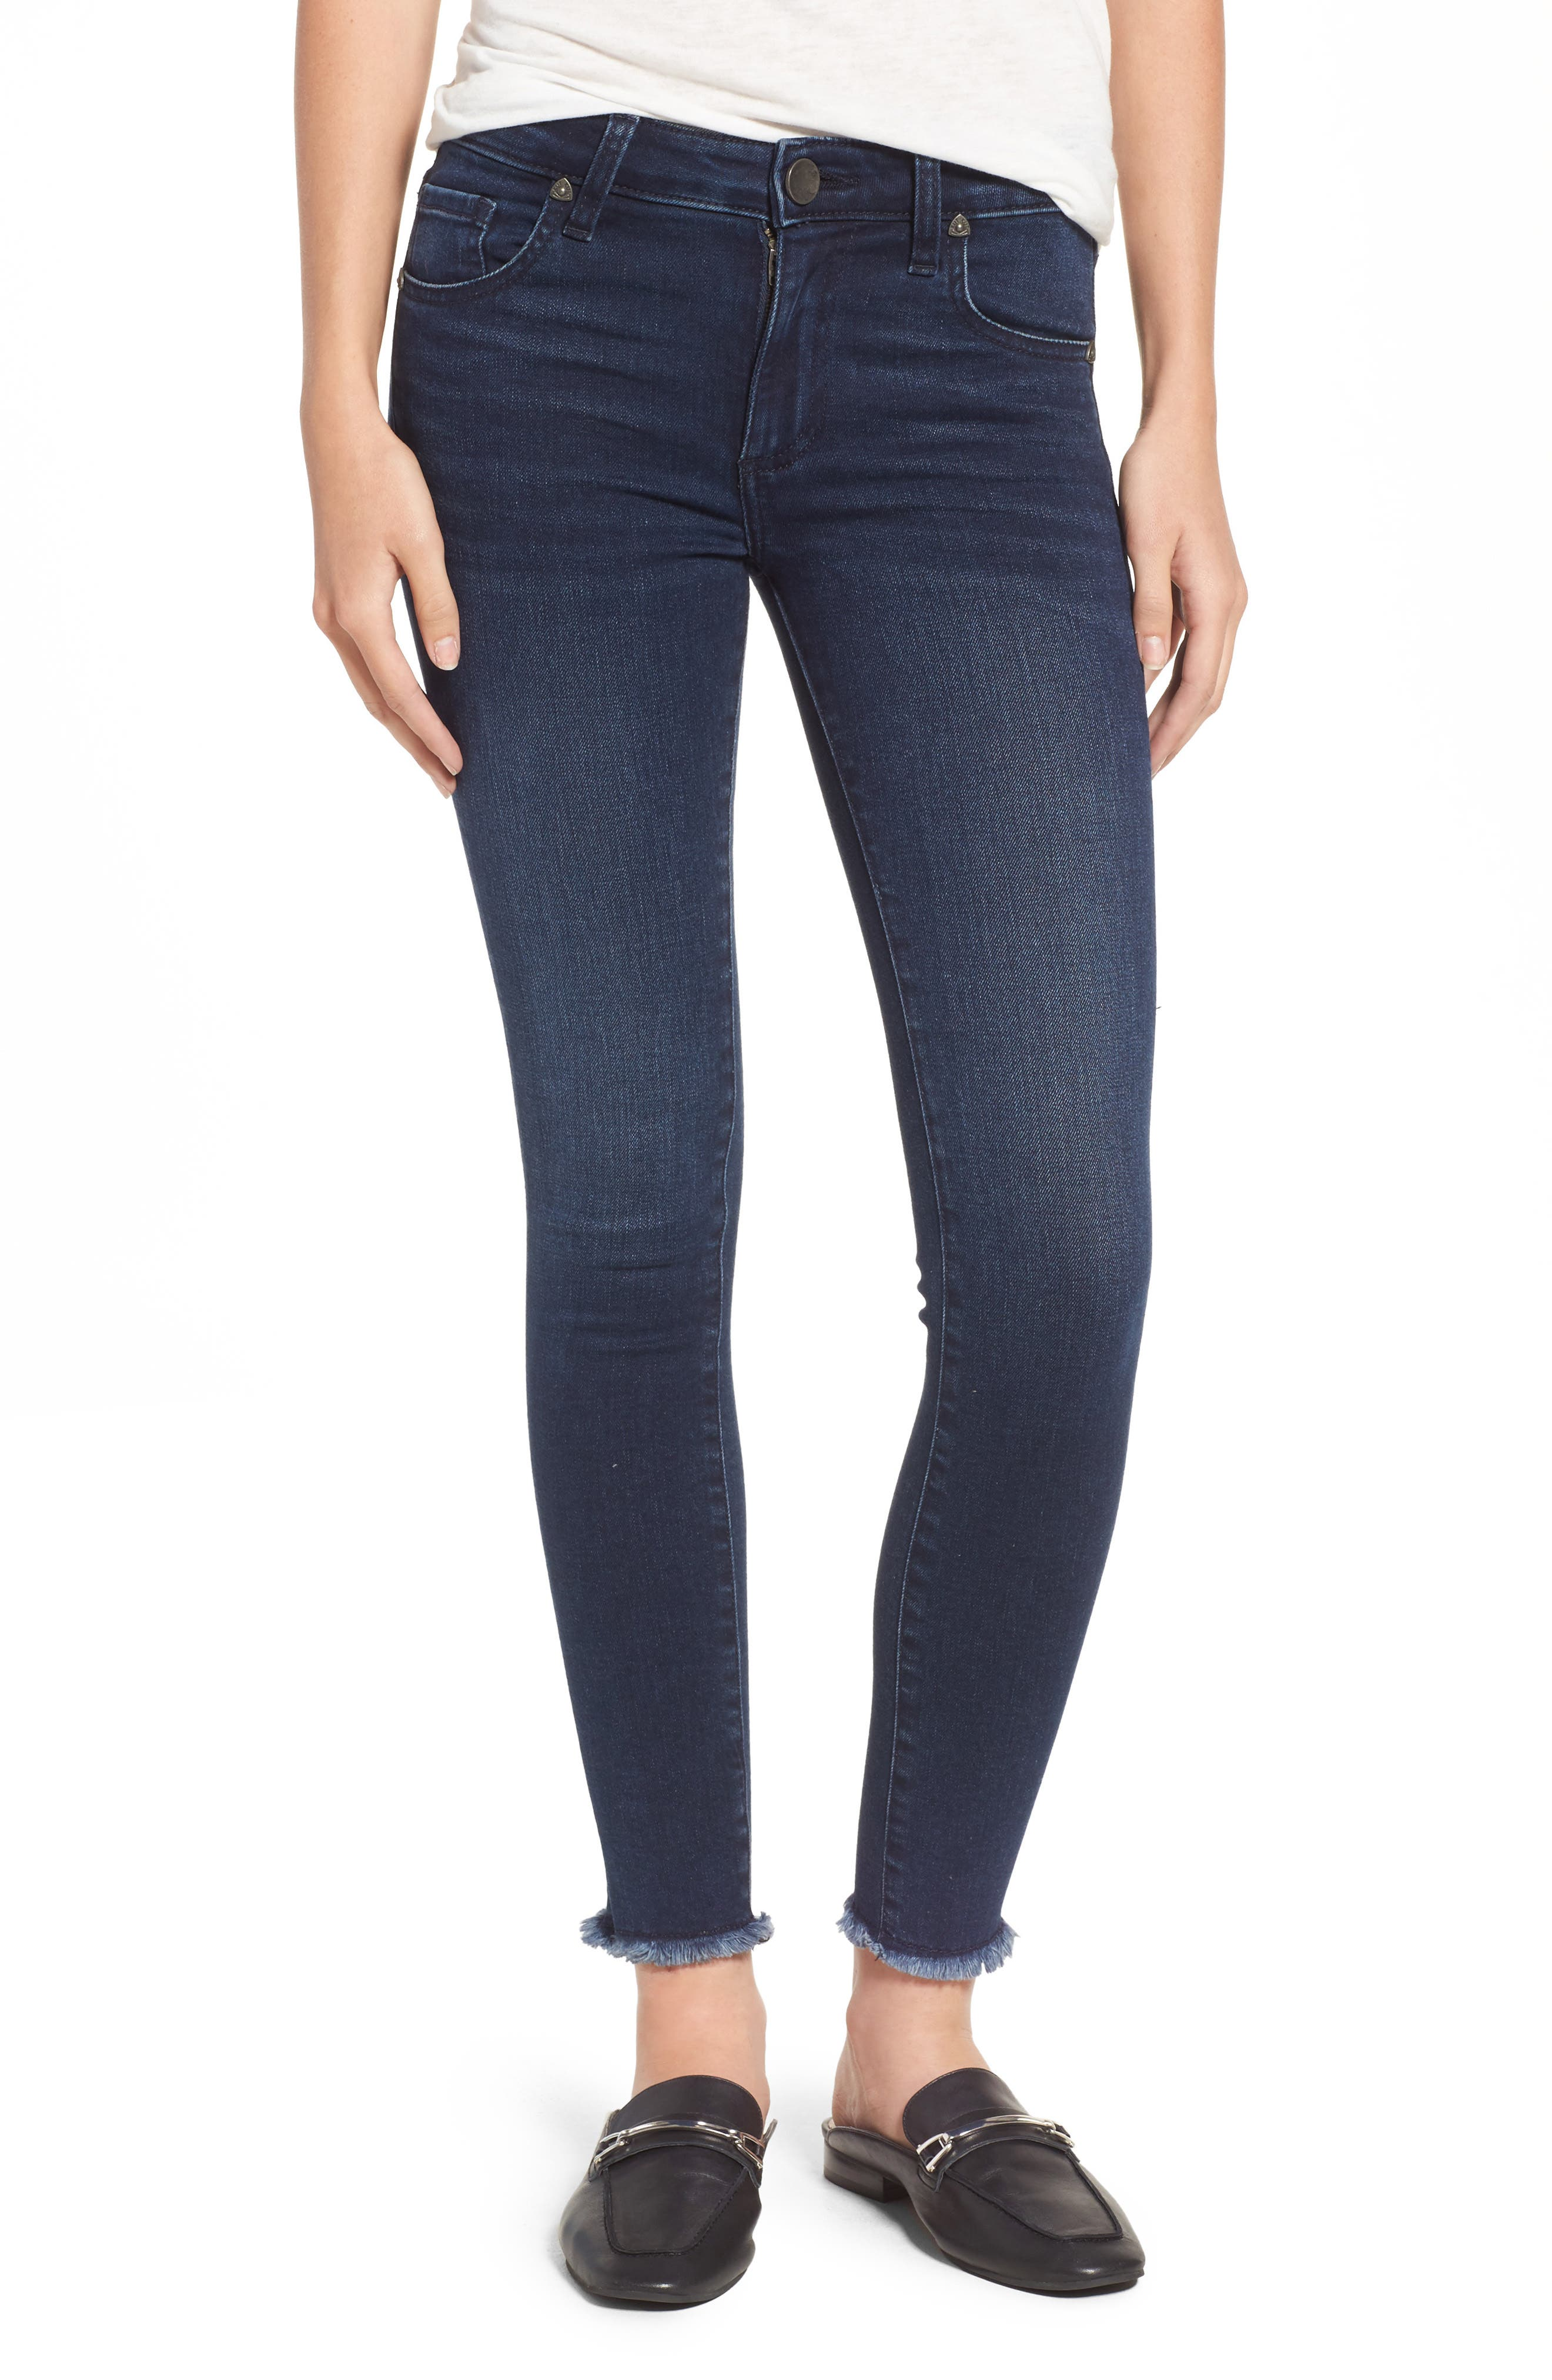 Main Image - KUT from the Kloth Connie Skinny Ankle Jeans (Bloomed) (Regular & Petite)